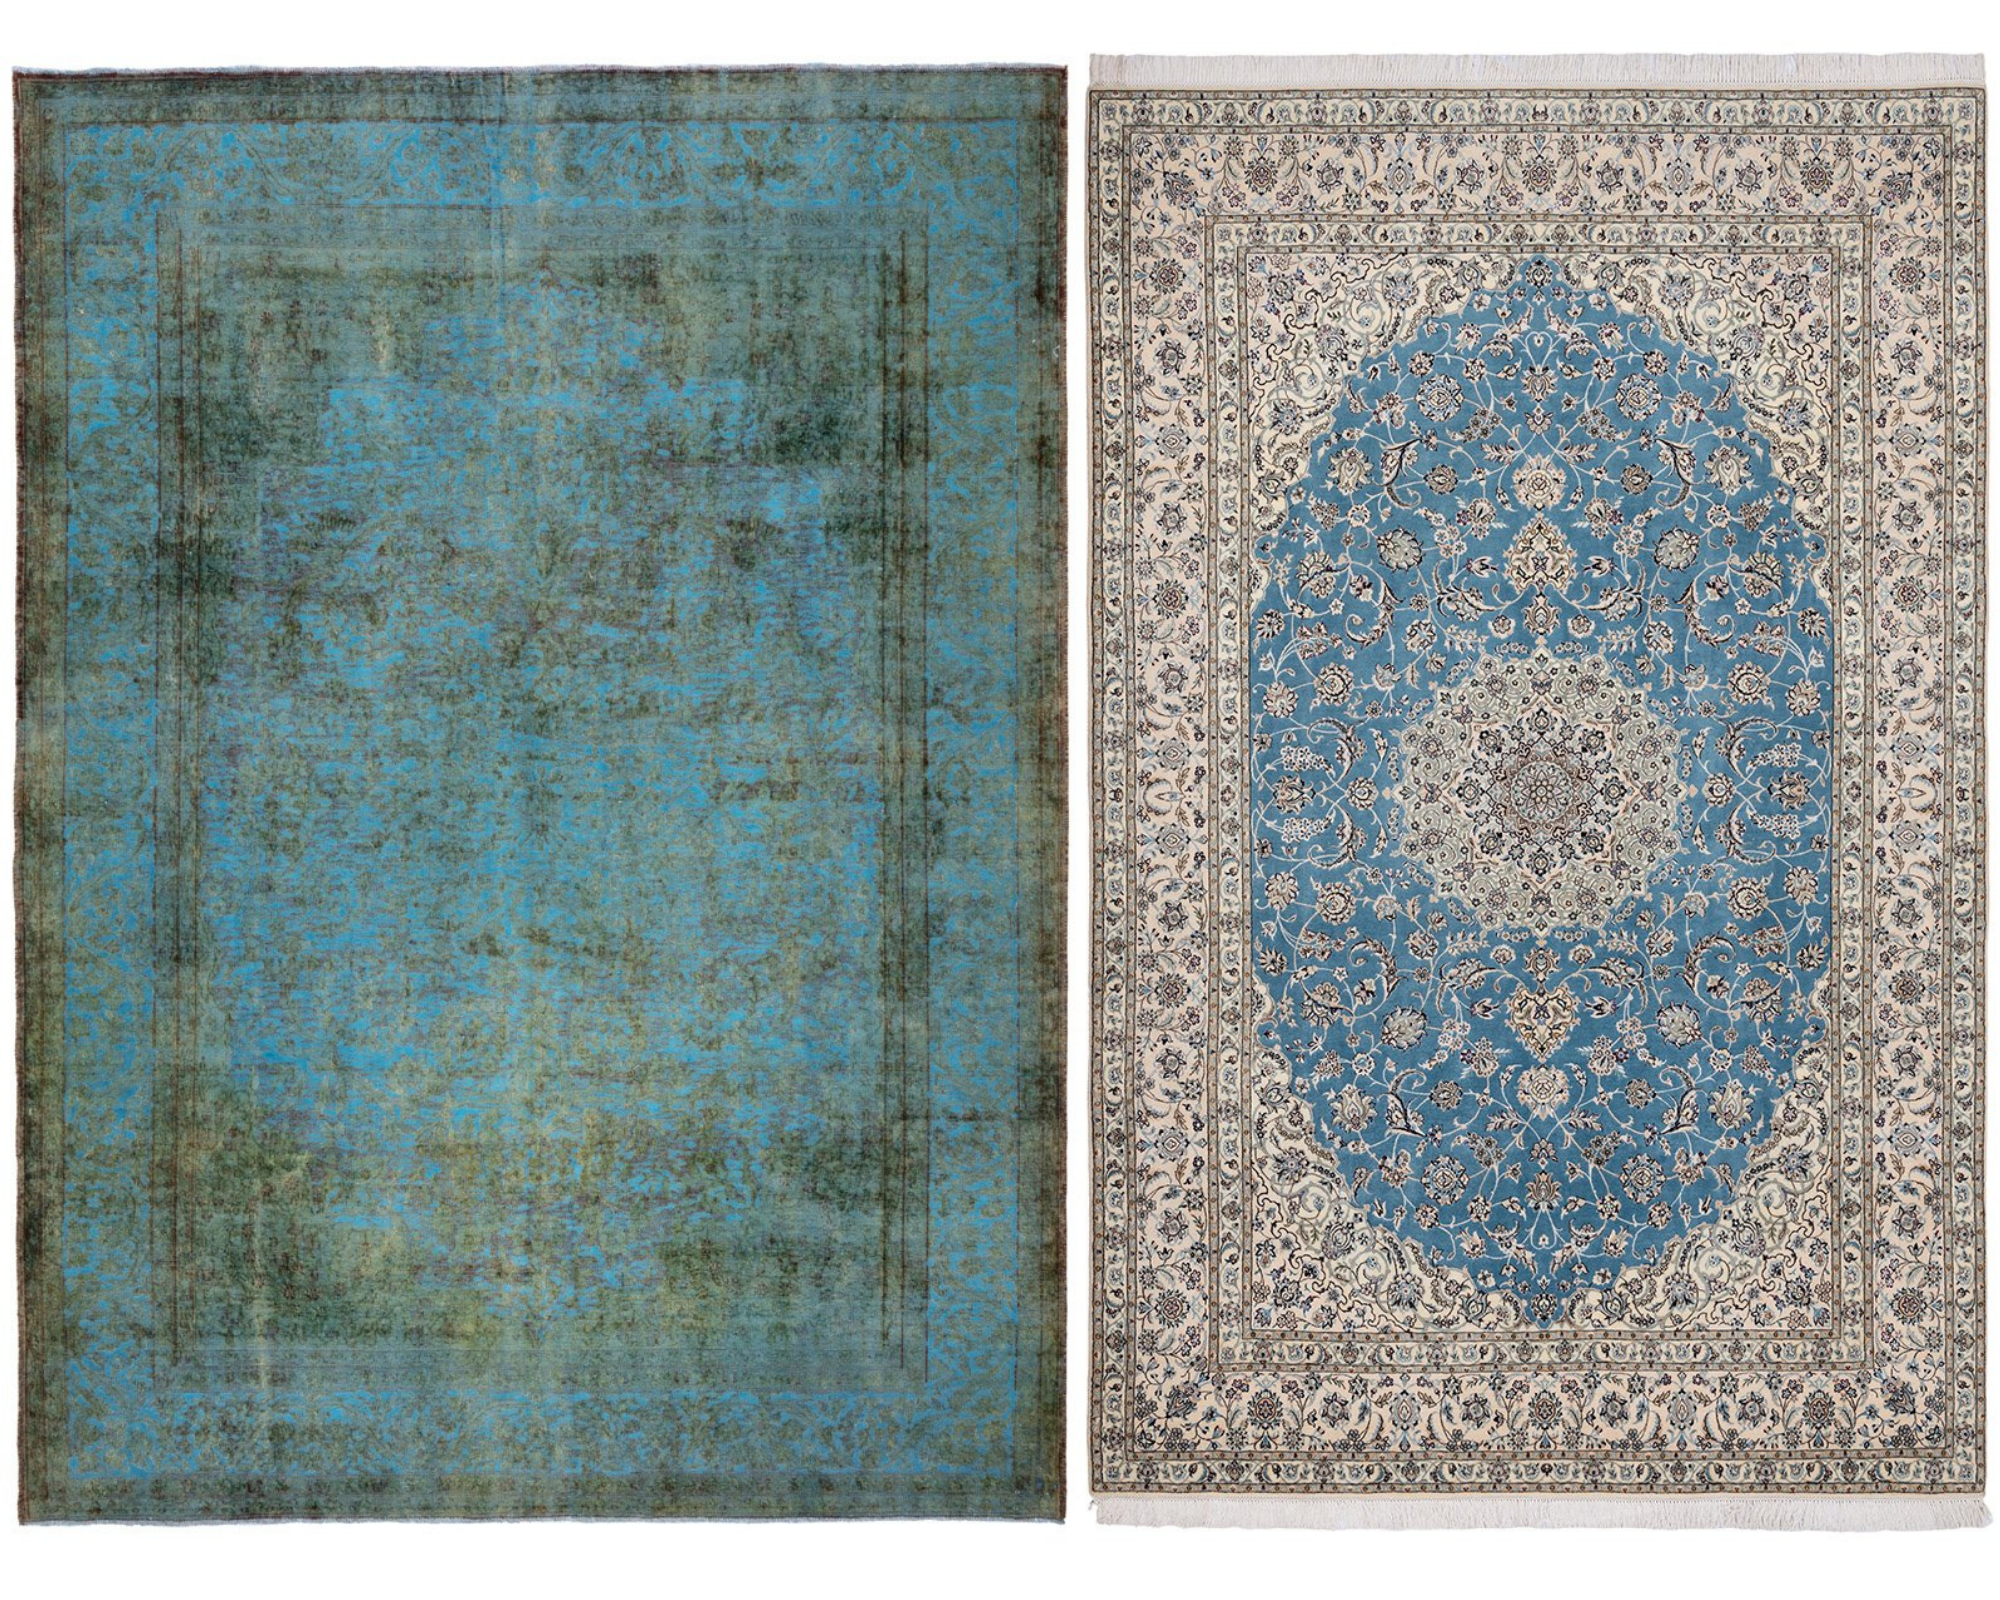 Persian Rugs, Pantone Colour Trends, Pantone Color trends spring/summer 2021, Oriental Rugs, Home decor, Home accessories, Interior design, Home decor ideas, decor ideas, bedroom decor ideas, Dreamy bedroom decor, Rug collection, Rugs of instagram, London rugs, UK home decor